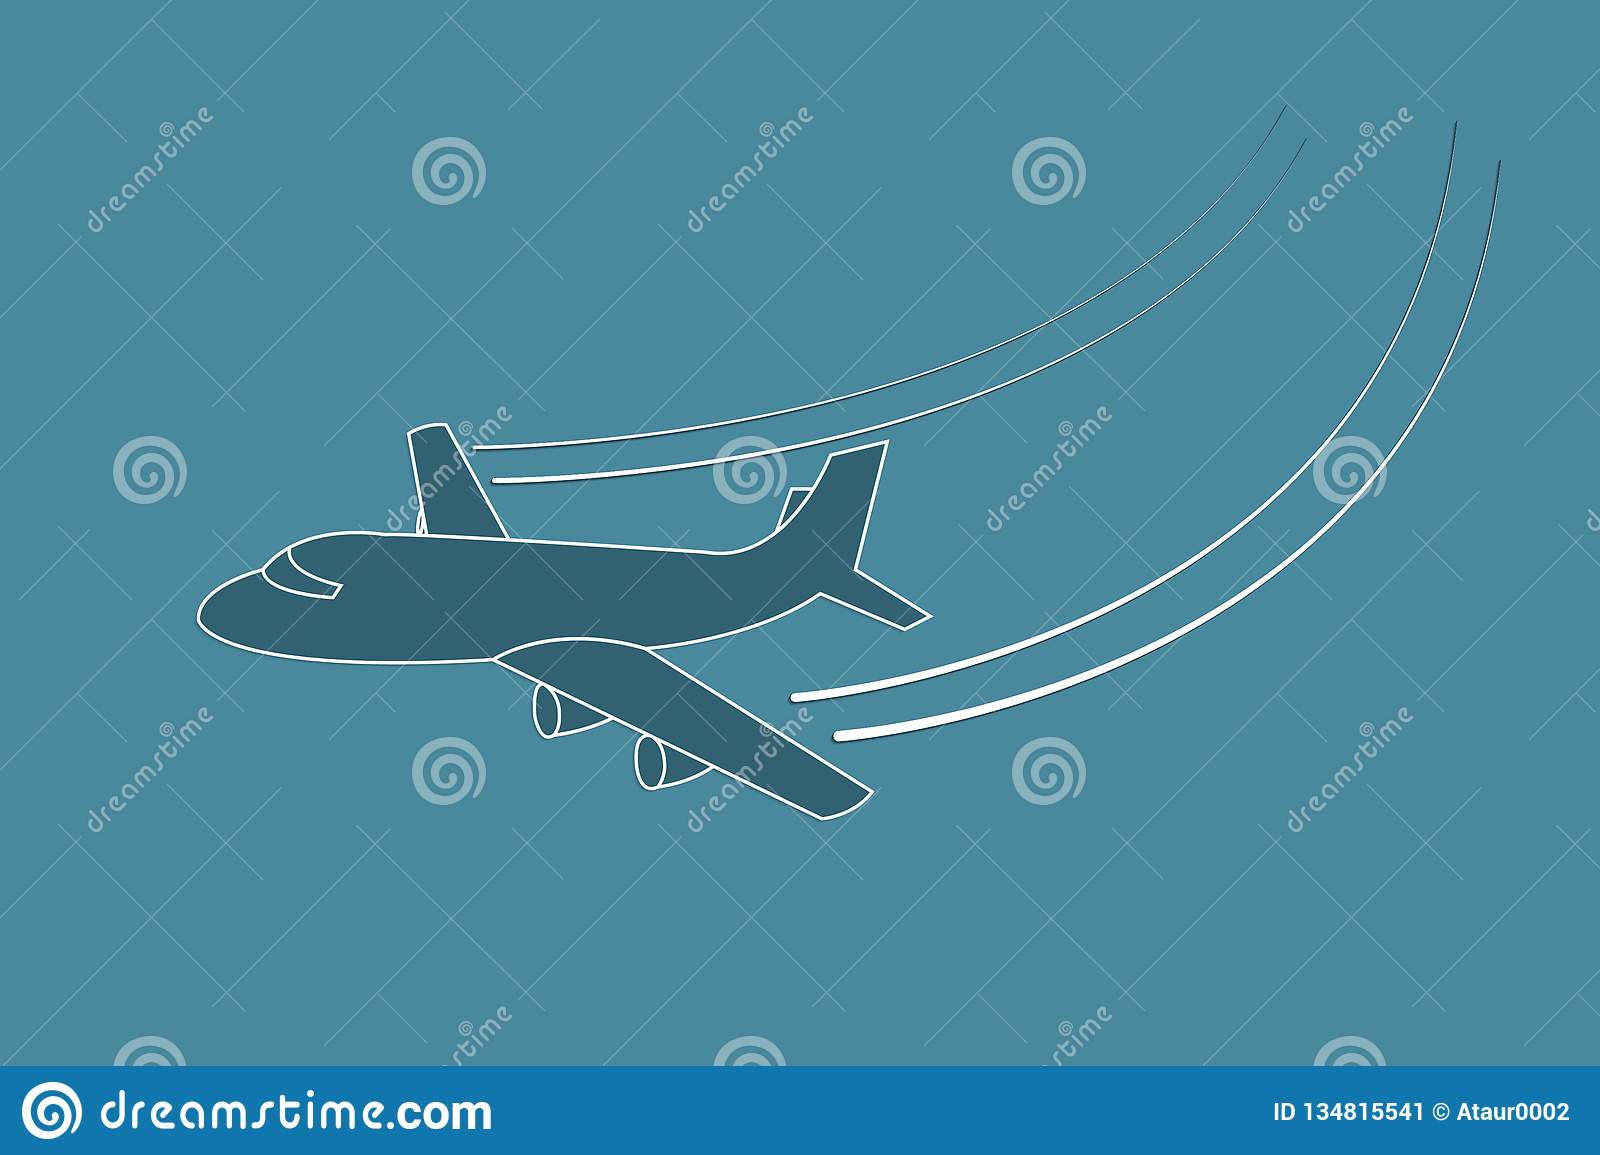 Airplane flying with changing direction using lines on blue background vector illustration for transport industry